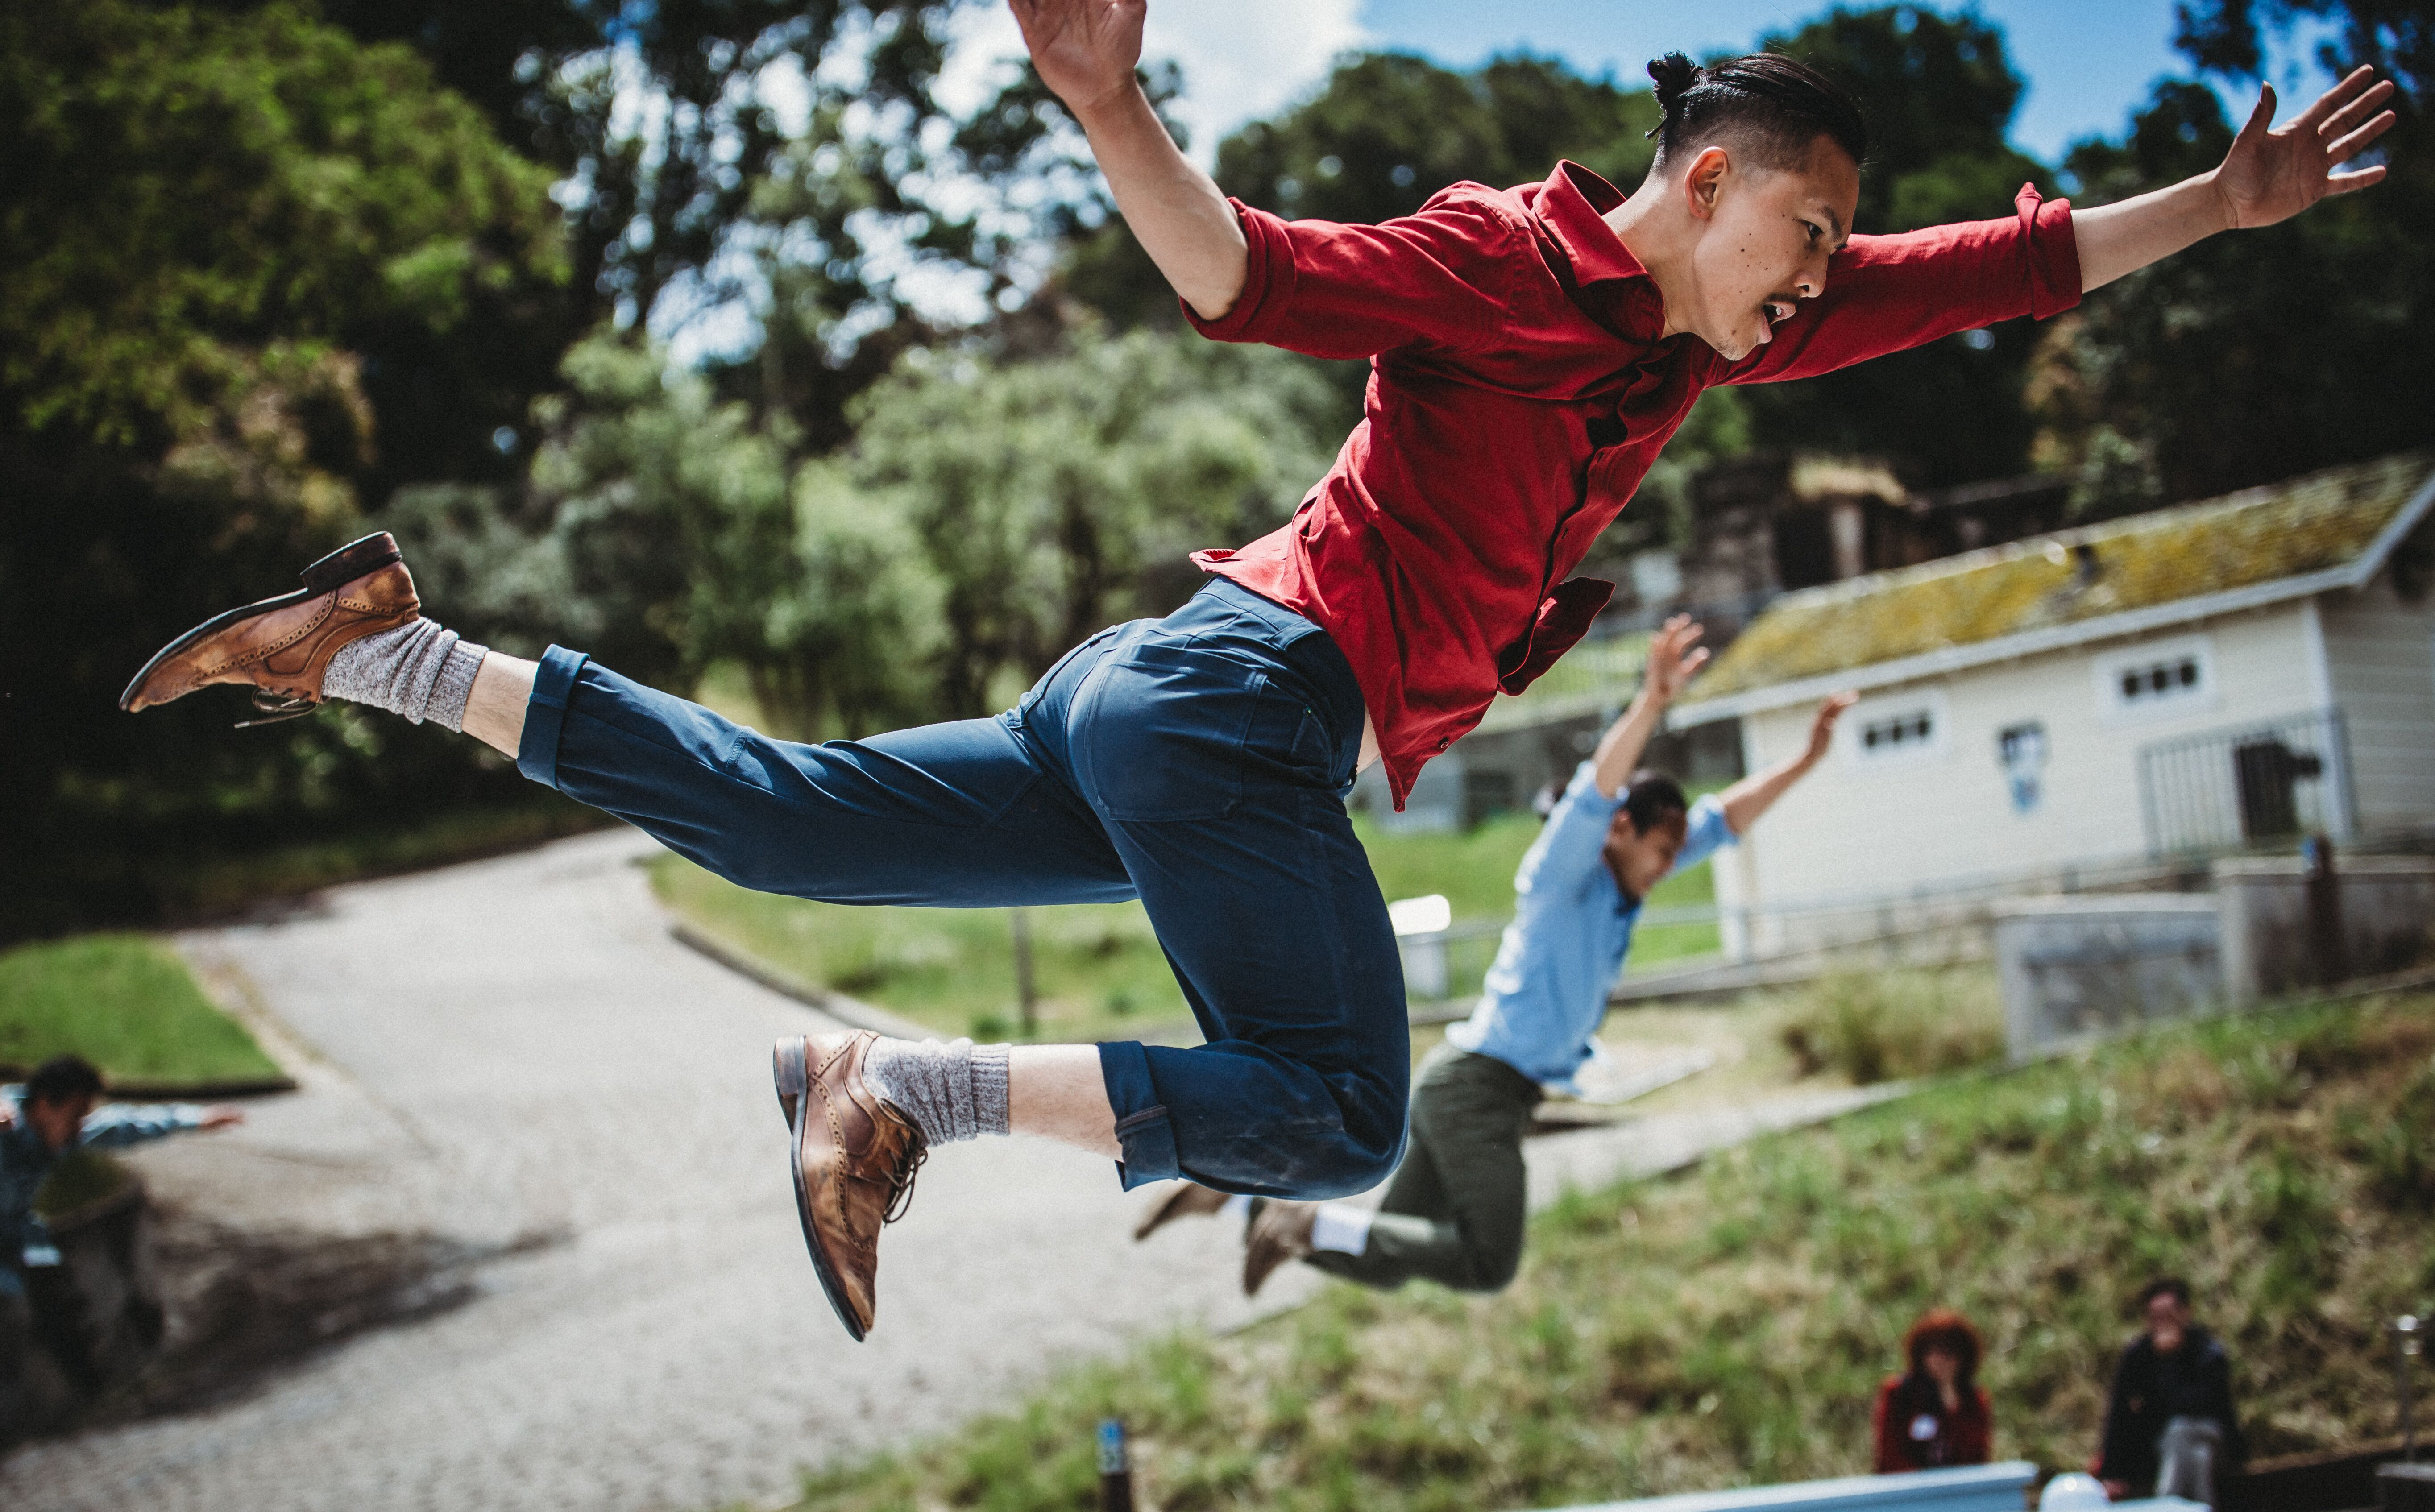 Man in blue jeans and red top flies through the air.